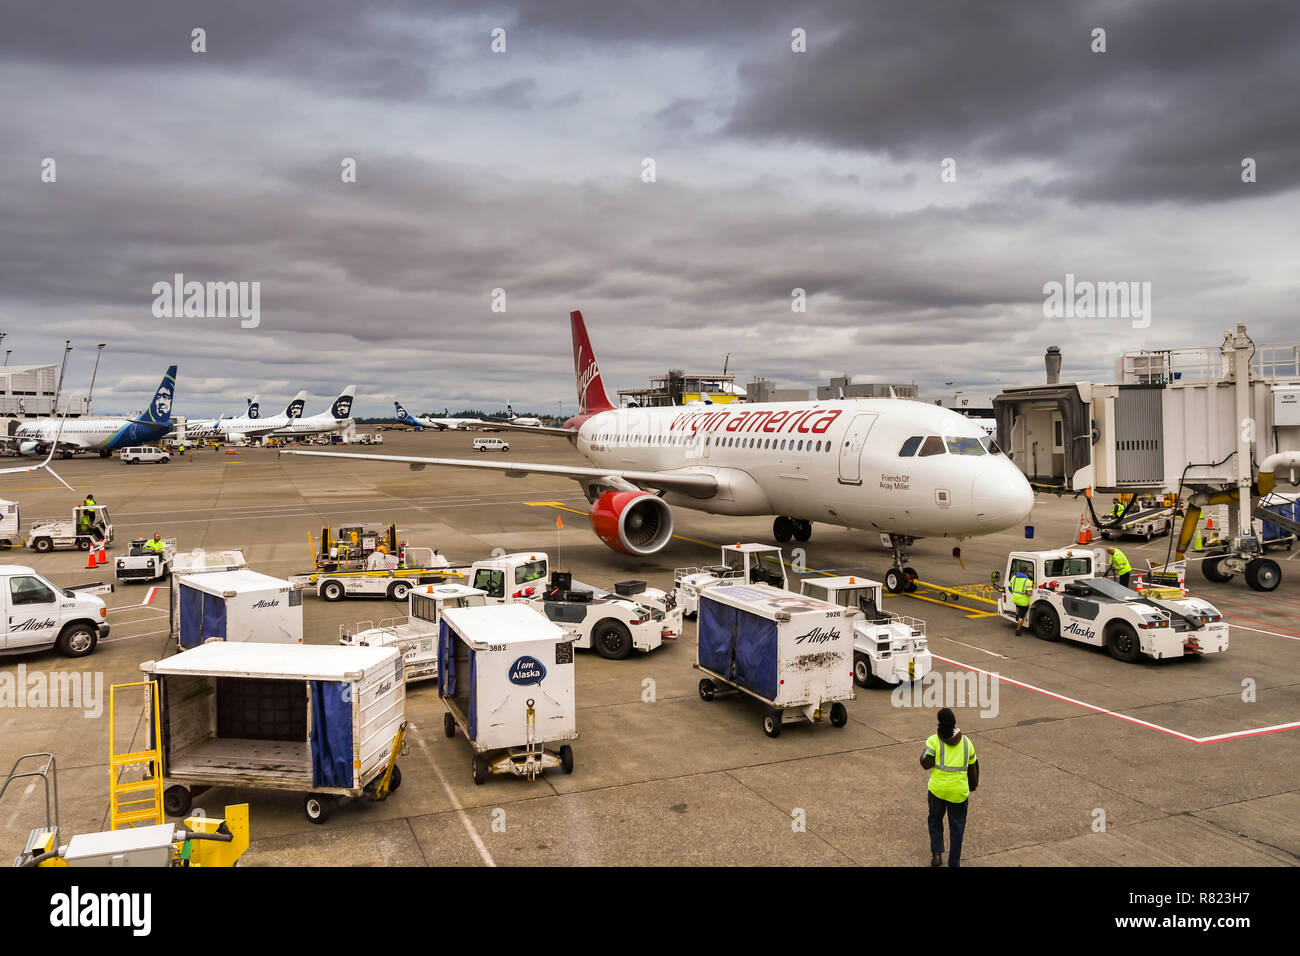 SEATTLE TACOMA AIRPORT, WA, USA - JUNE 2018:  Virgin America Airbus A320 jet with ground equipment in the foreground. A tug is attached to the plane t - Stock Image